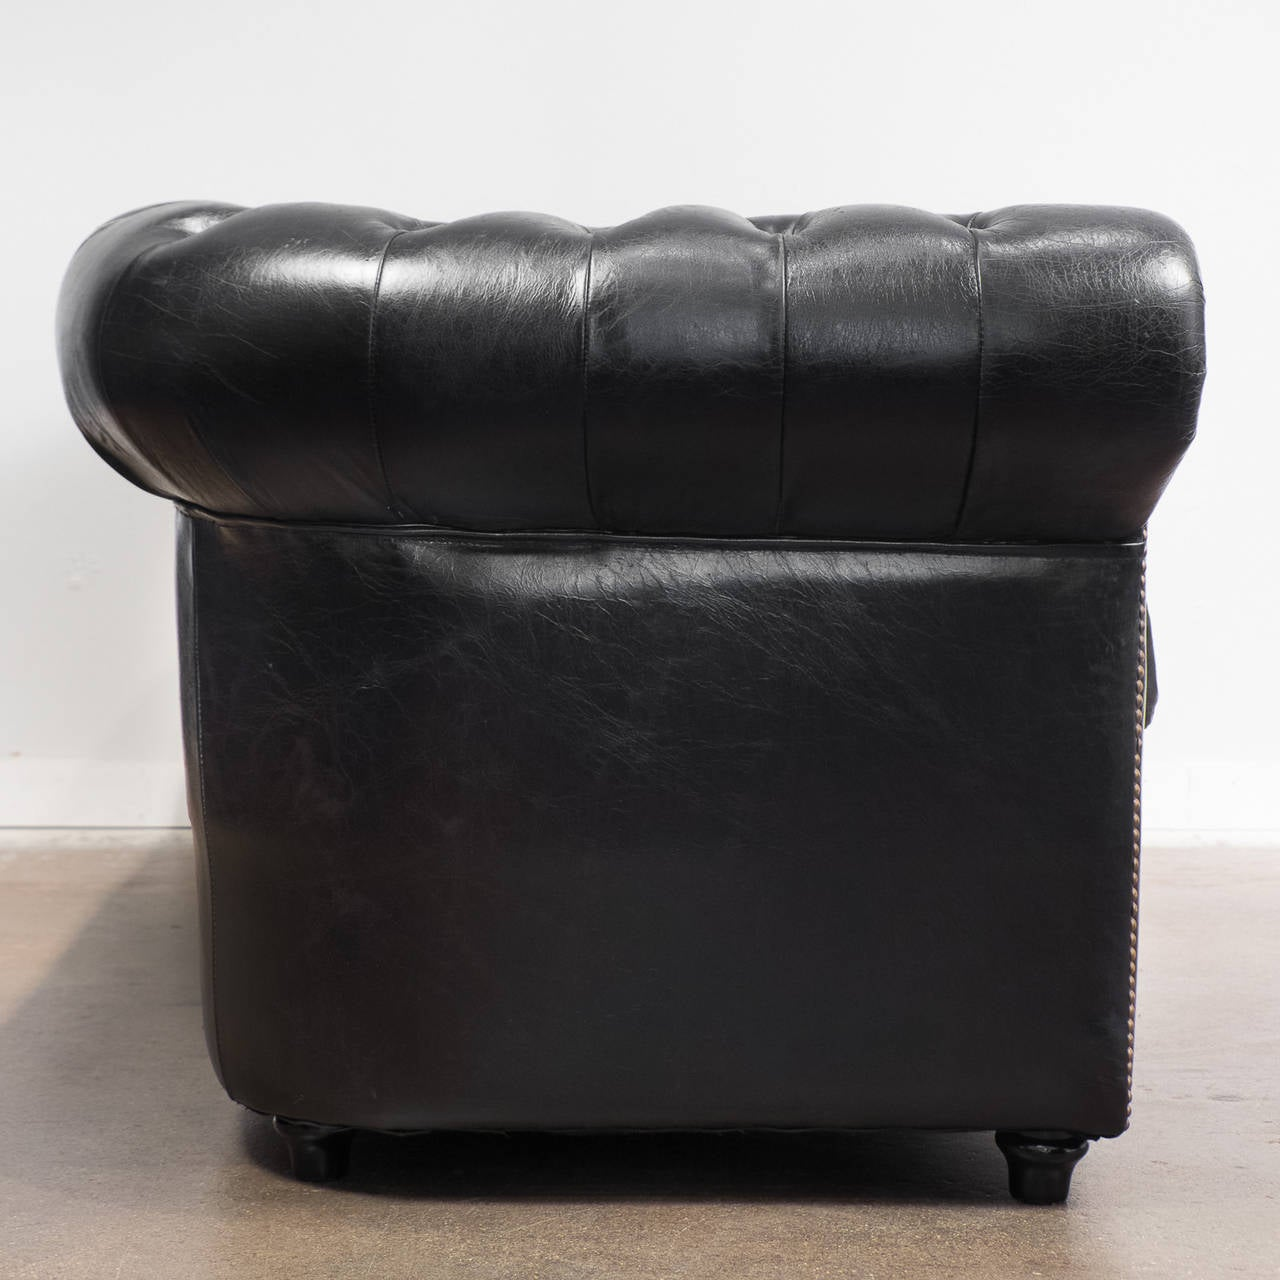 Blue leather chesterfield sofa at 1stdibs - Vintage Black Leather Chesterfield Sofa 4